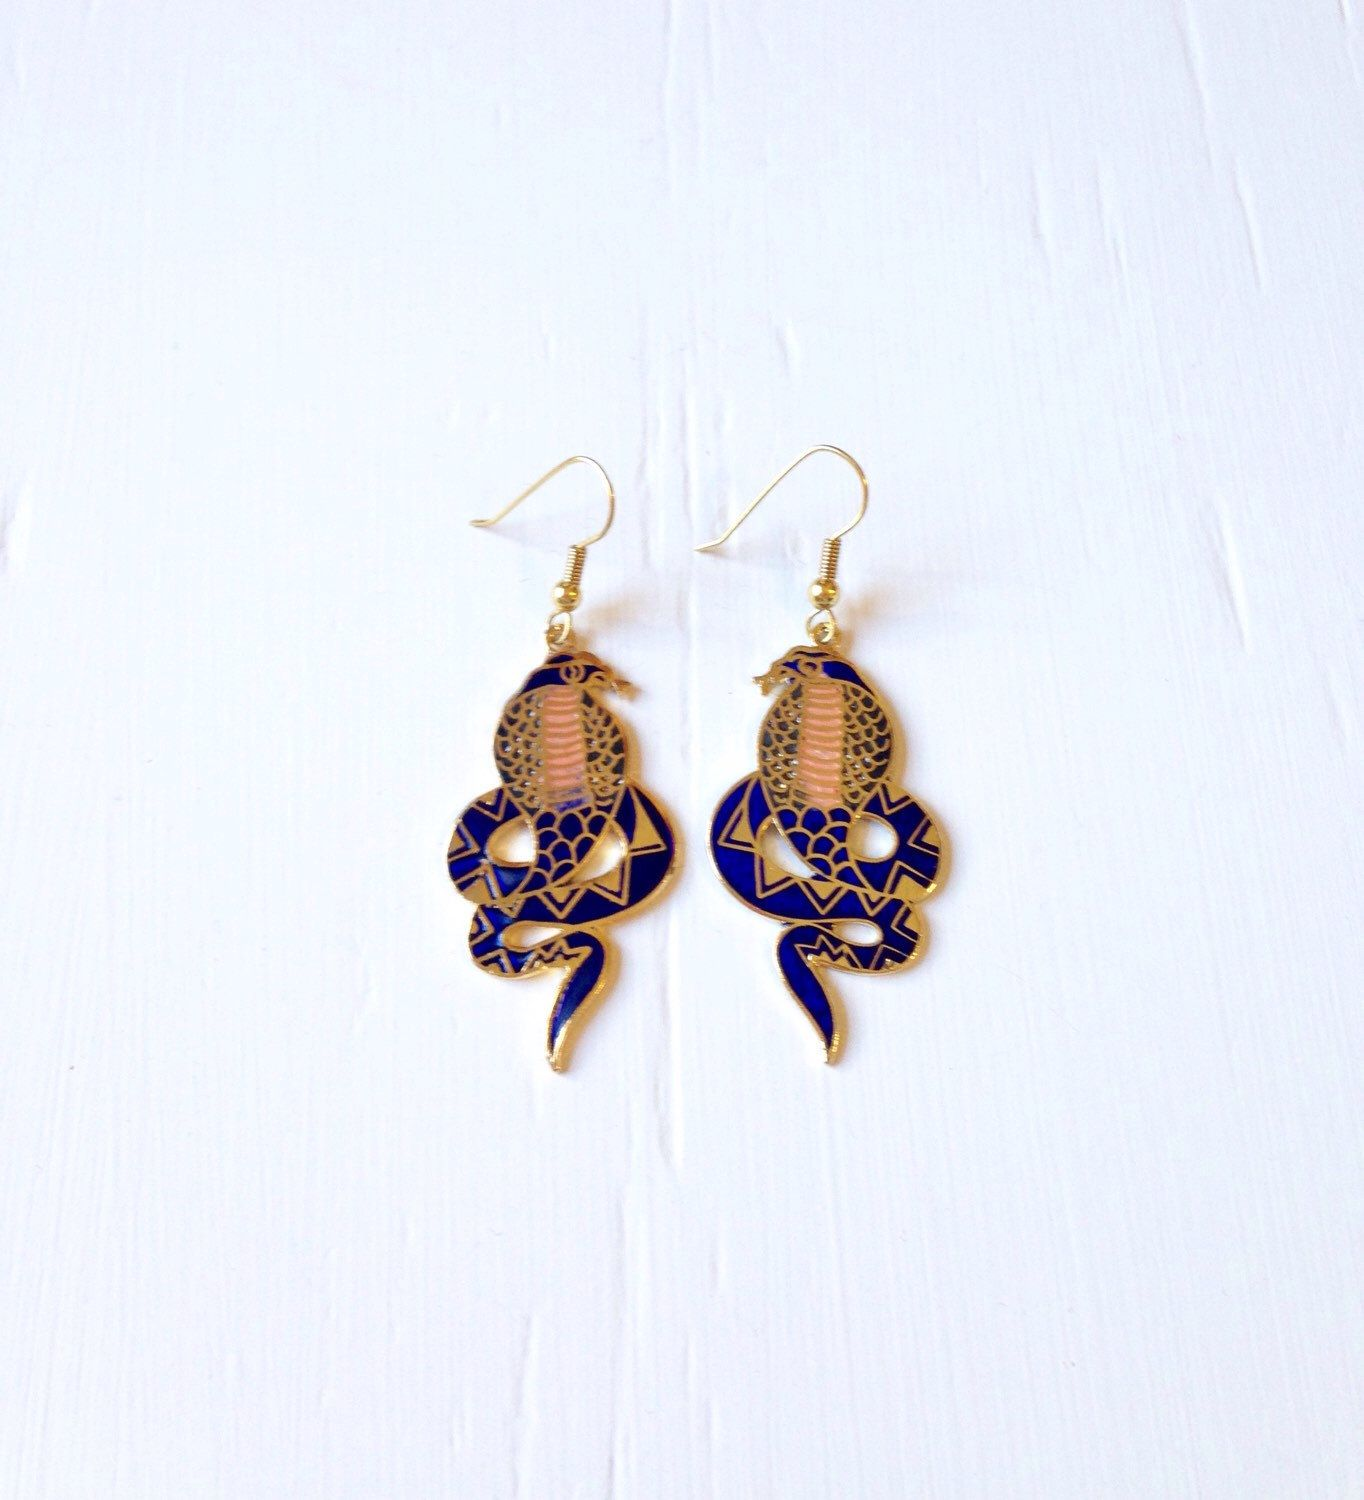 Cobra earrings    Etsy shop https://www.etsy.com/listing/253091367/10-off-sale-vintage-cloisonne-cobra